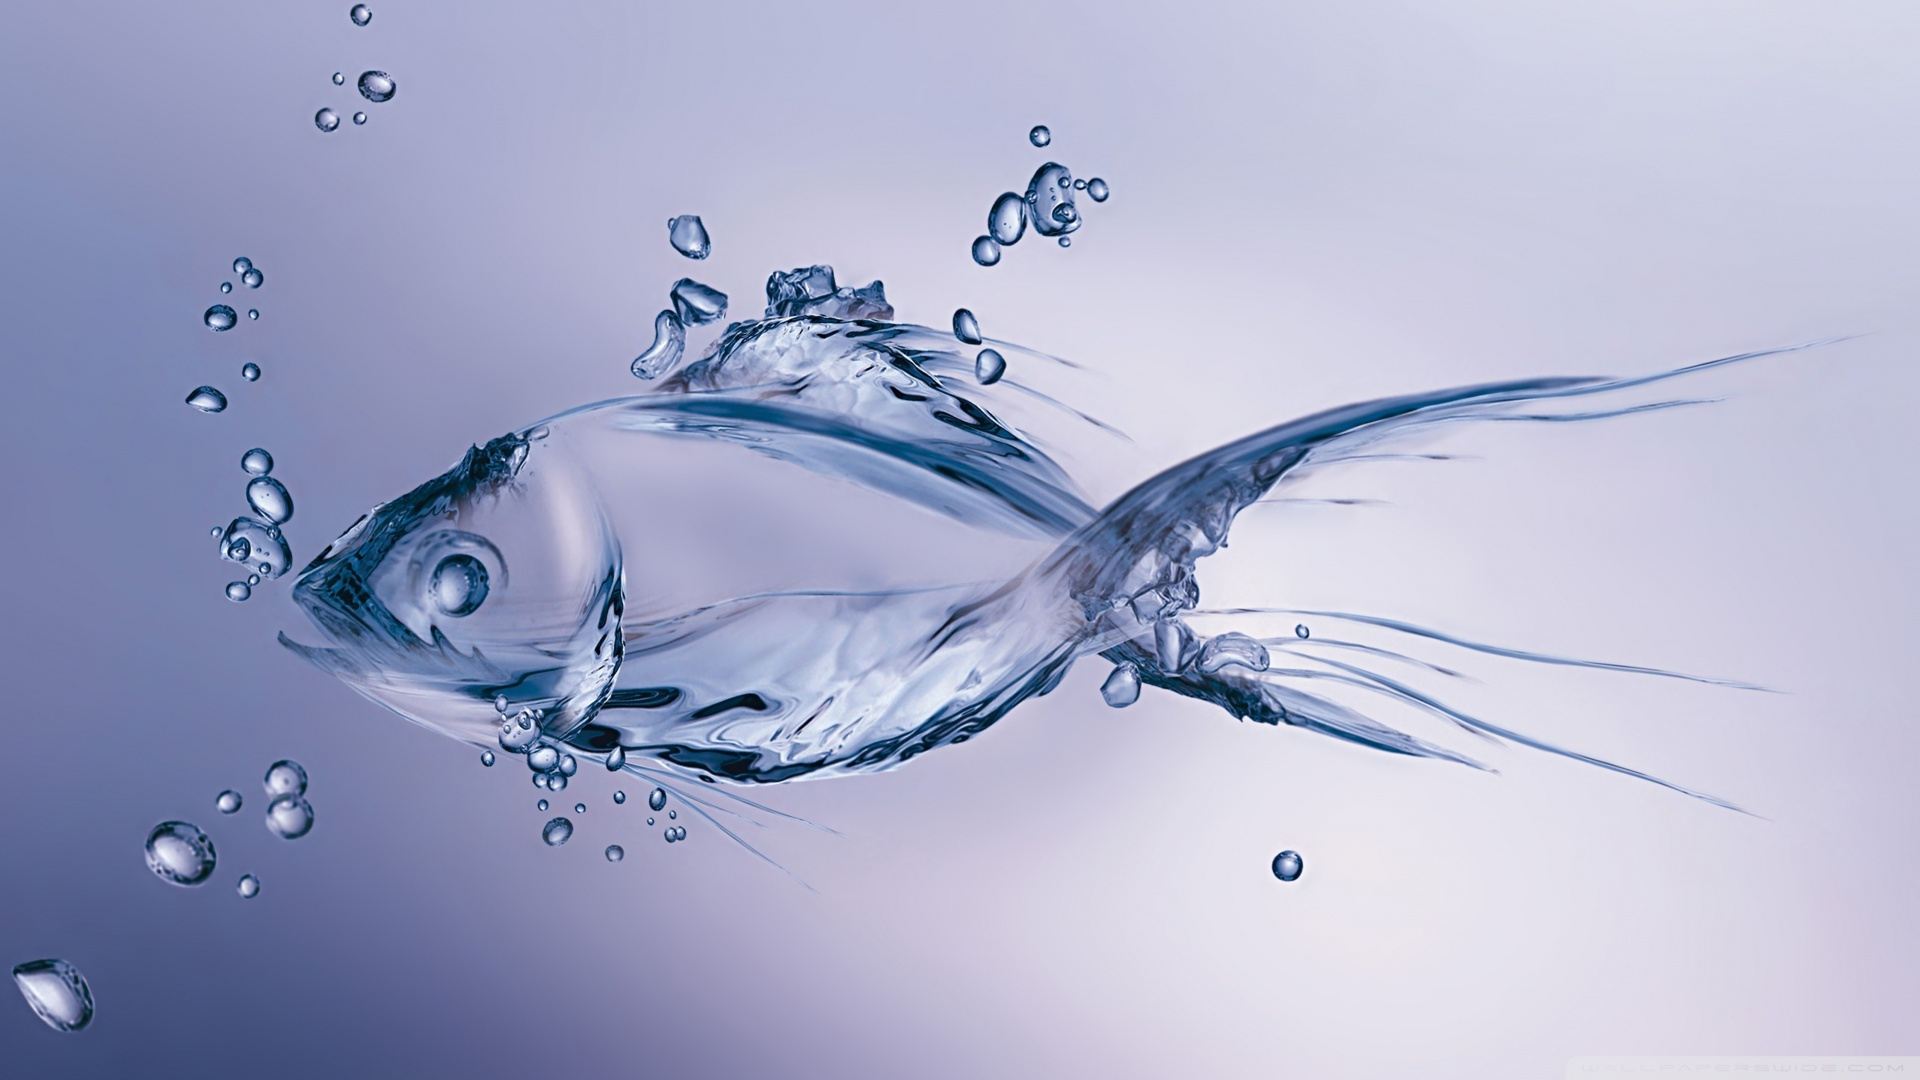 water_fish-wallpaper-1920x1080